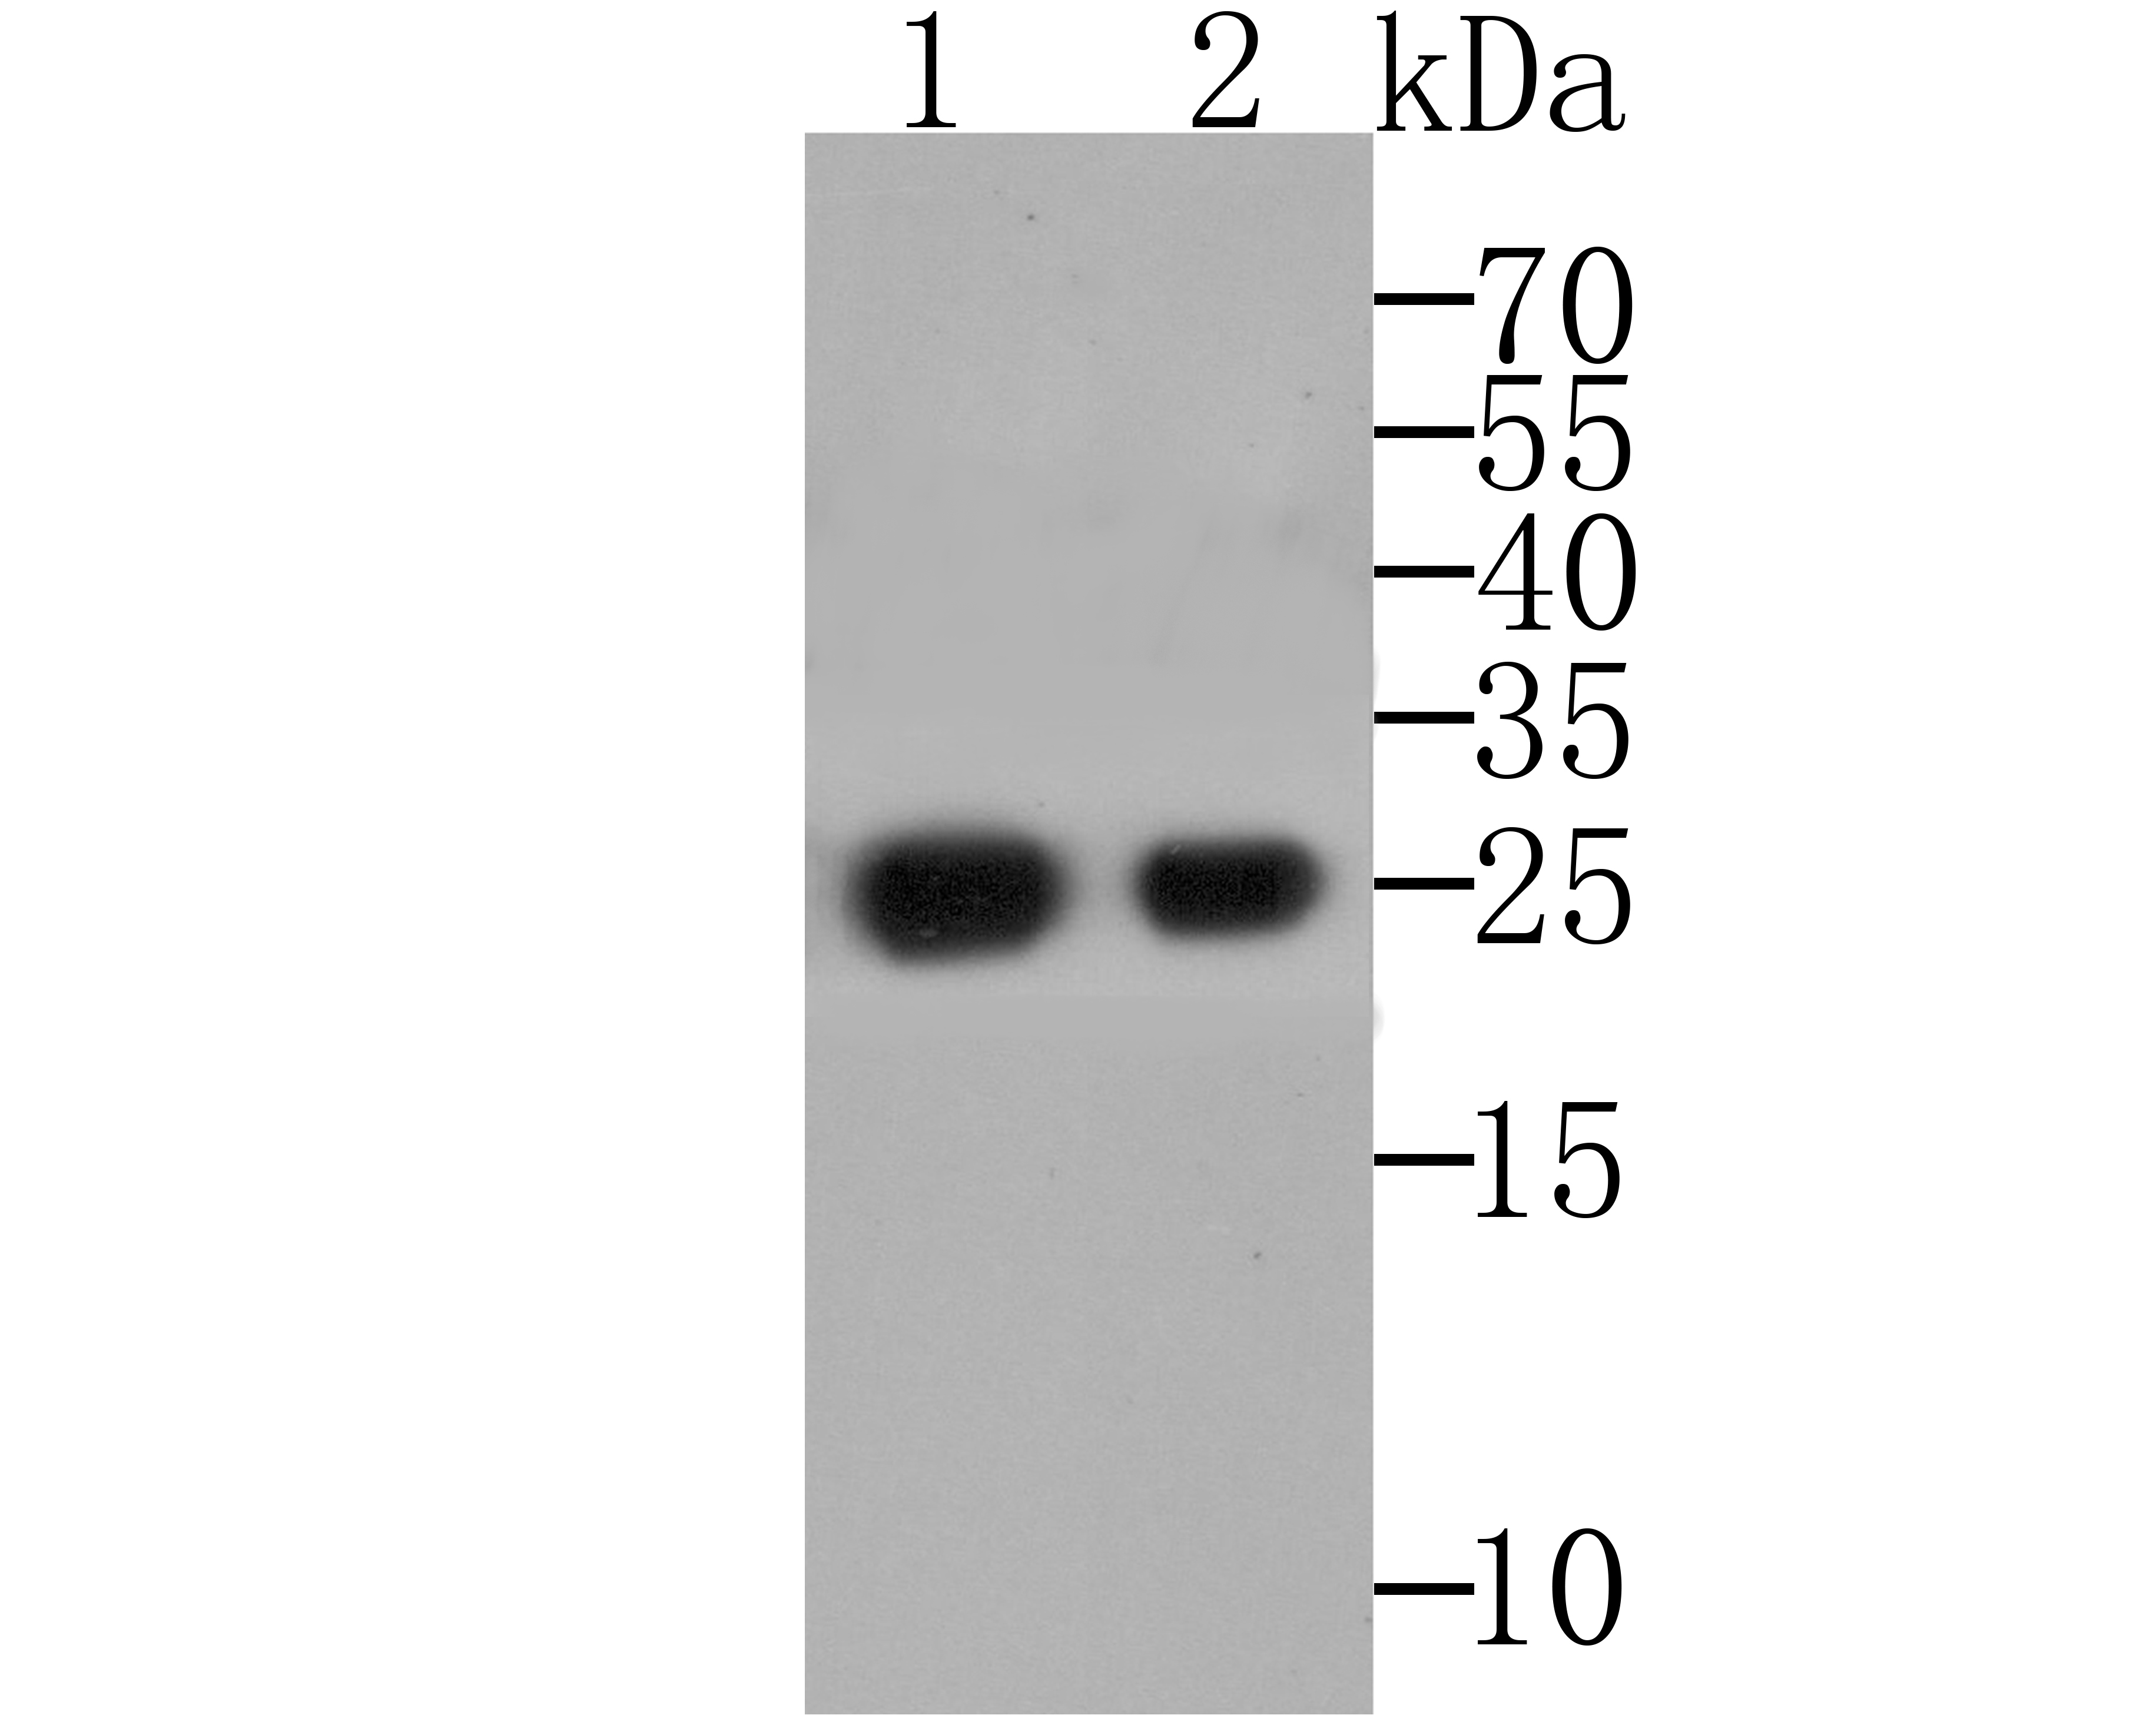 Western blot analysis of Alpha-1-acid glycoprotein on recombinant protein using anti-Alpha-1-acid glycoprotein antibody at 1/5,000 (1), 1:20,000 (2) dilution.